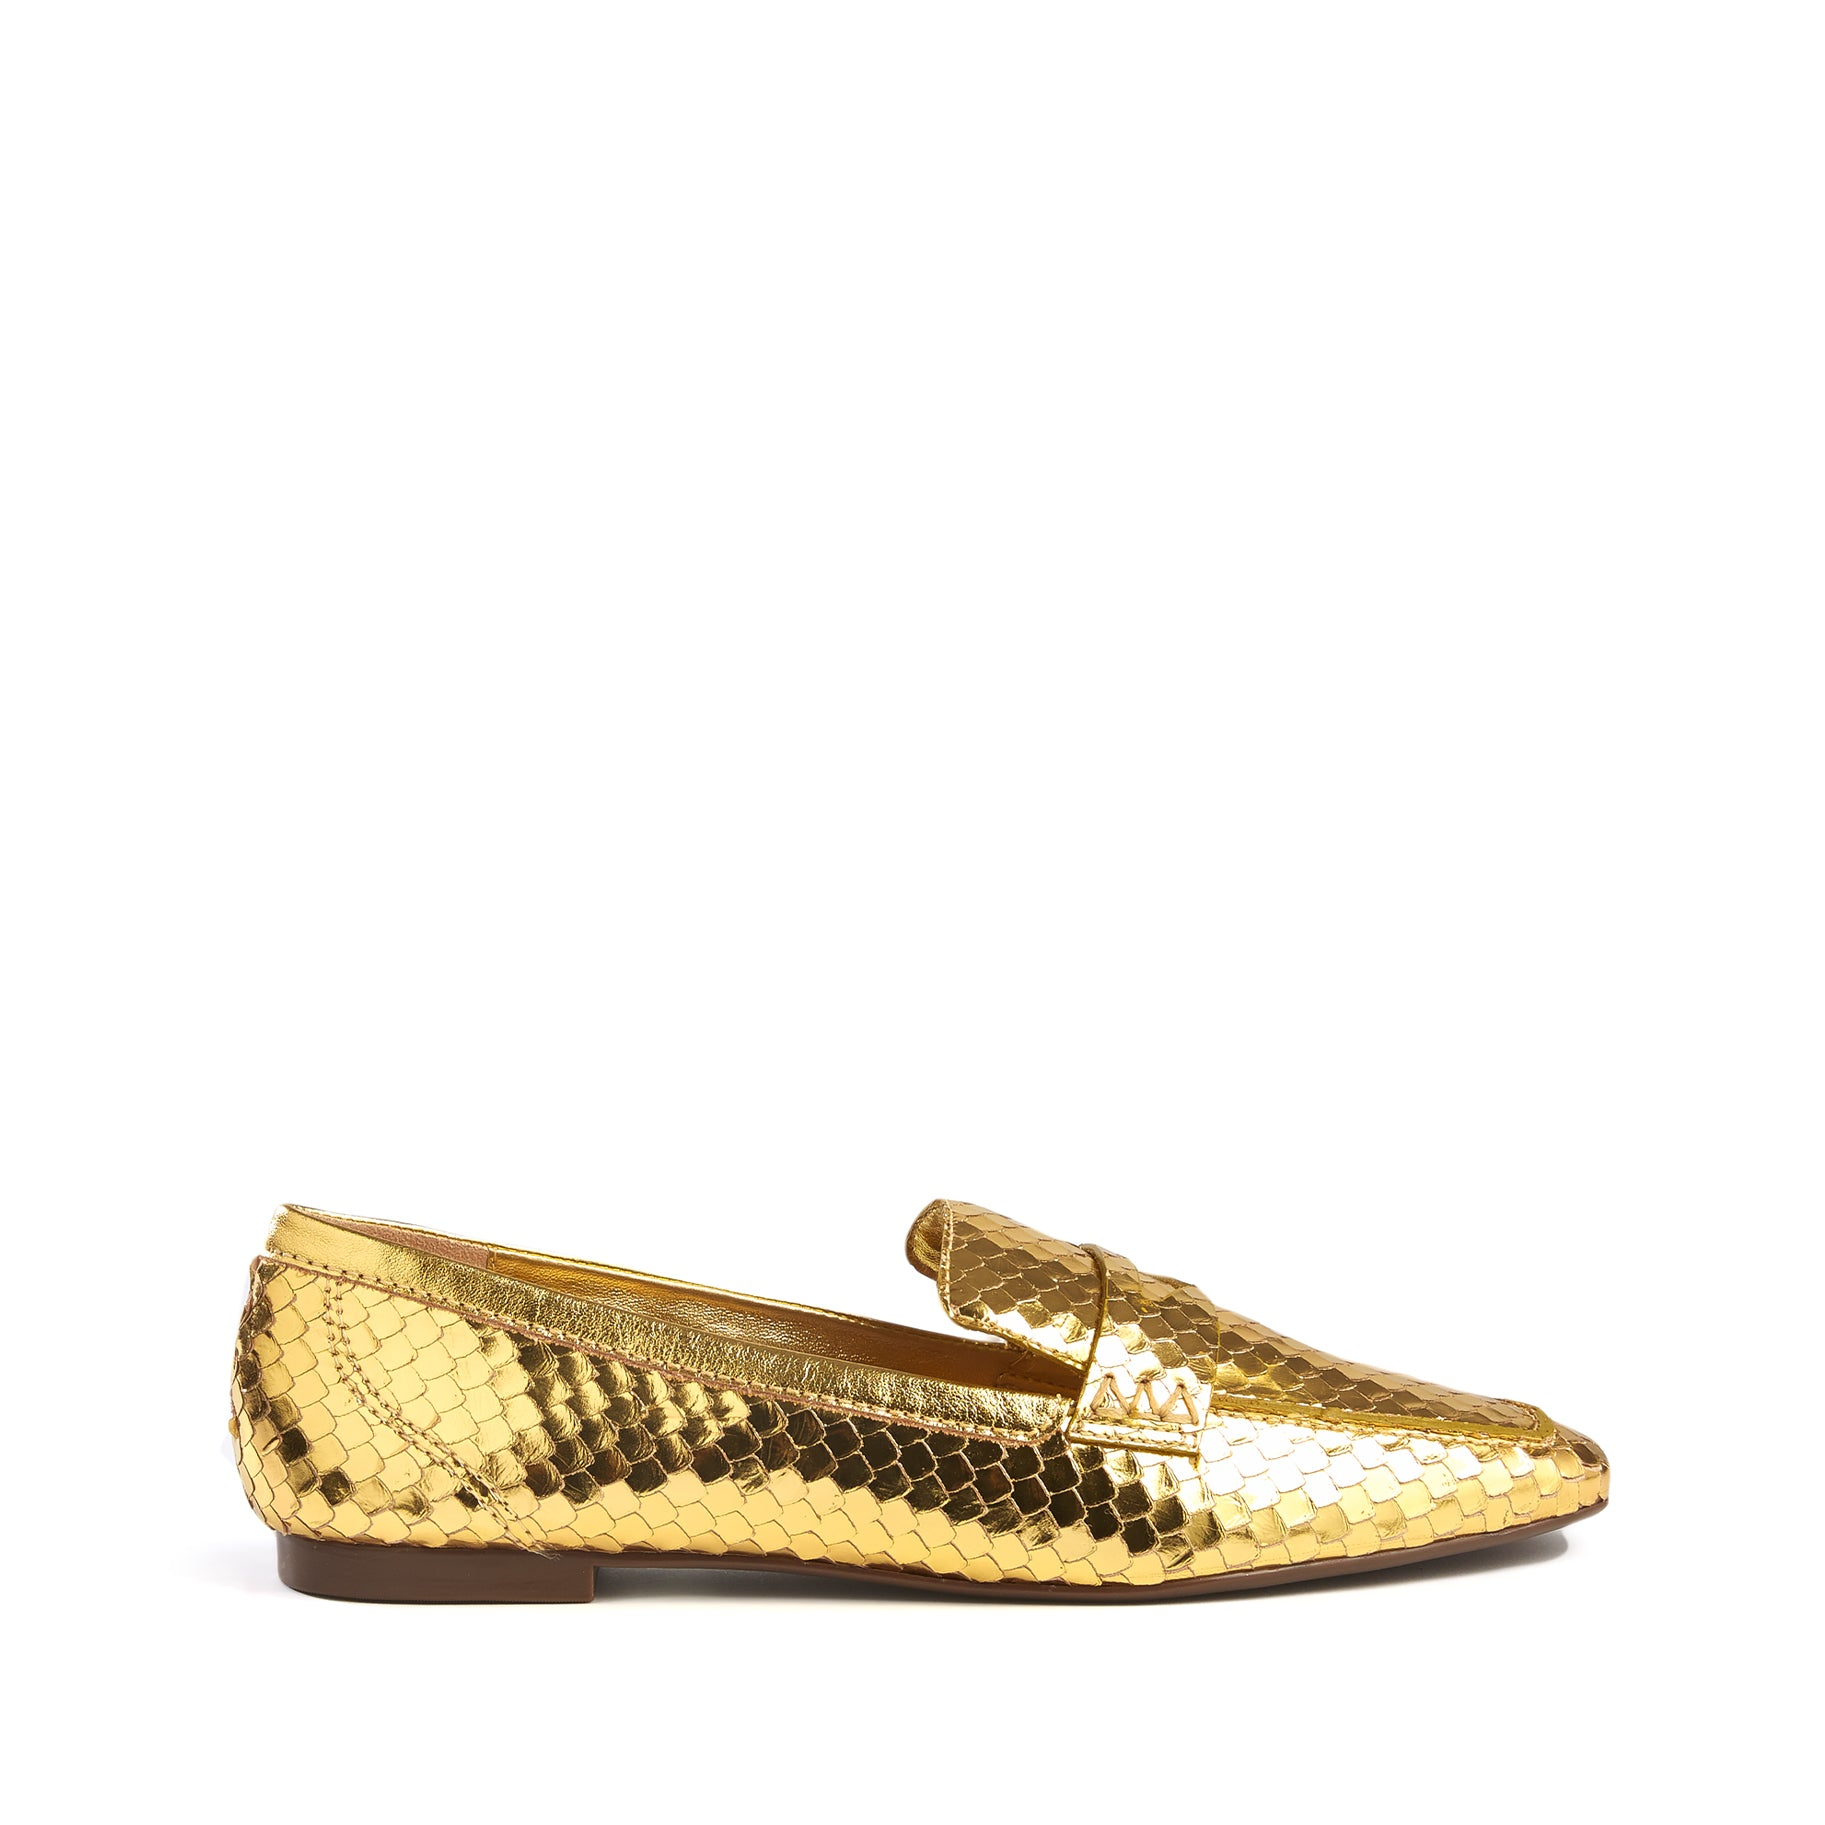 Ladonna Flats Gold Snake Embossed Leather